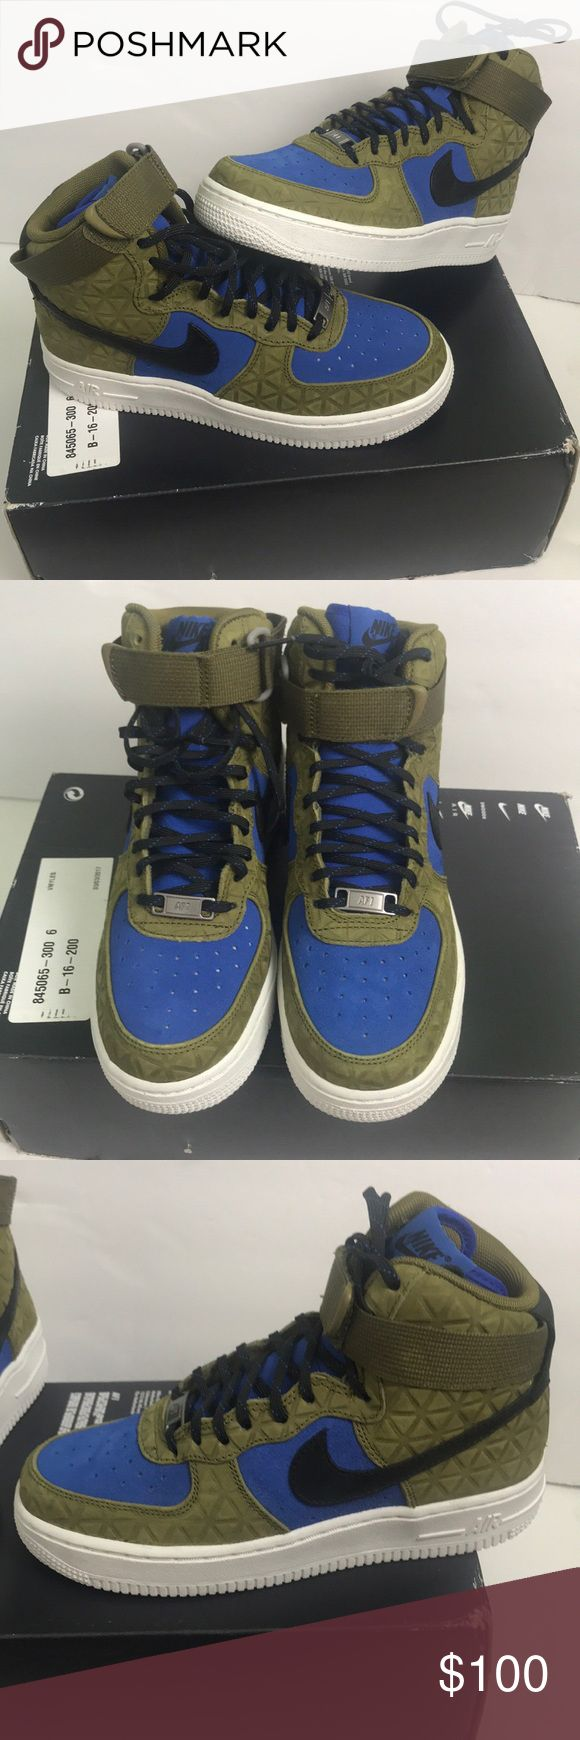 Nike WOMEN'S Air Force 1 premium Suede size 6 Amazing and rare women's Air Force 1! These sneakers are olive green, royal blue, and black. Amazing quilted pattern on the sneaker adds a pop to an already nice shoe! Very nice Suede material. WOMEN'S size 6. Brand New in box! Please note the box does not have a lid. Add this to your collection today! Nike Shoes Sneakers